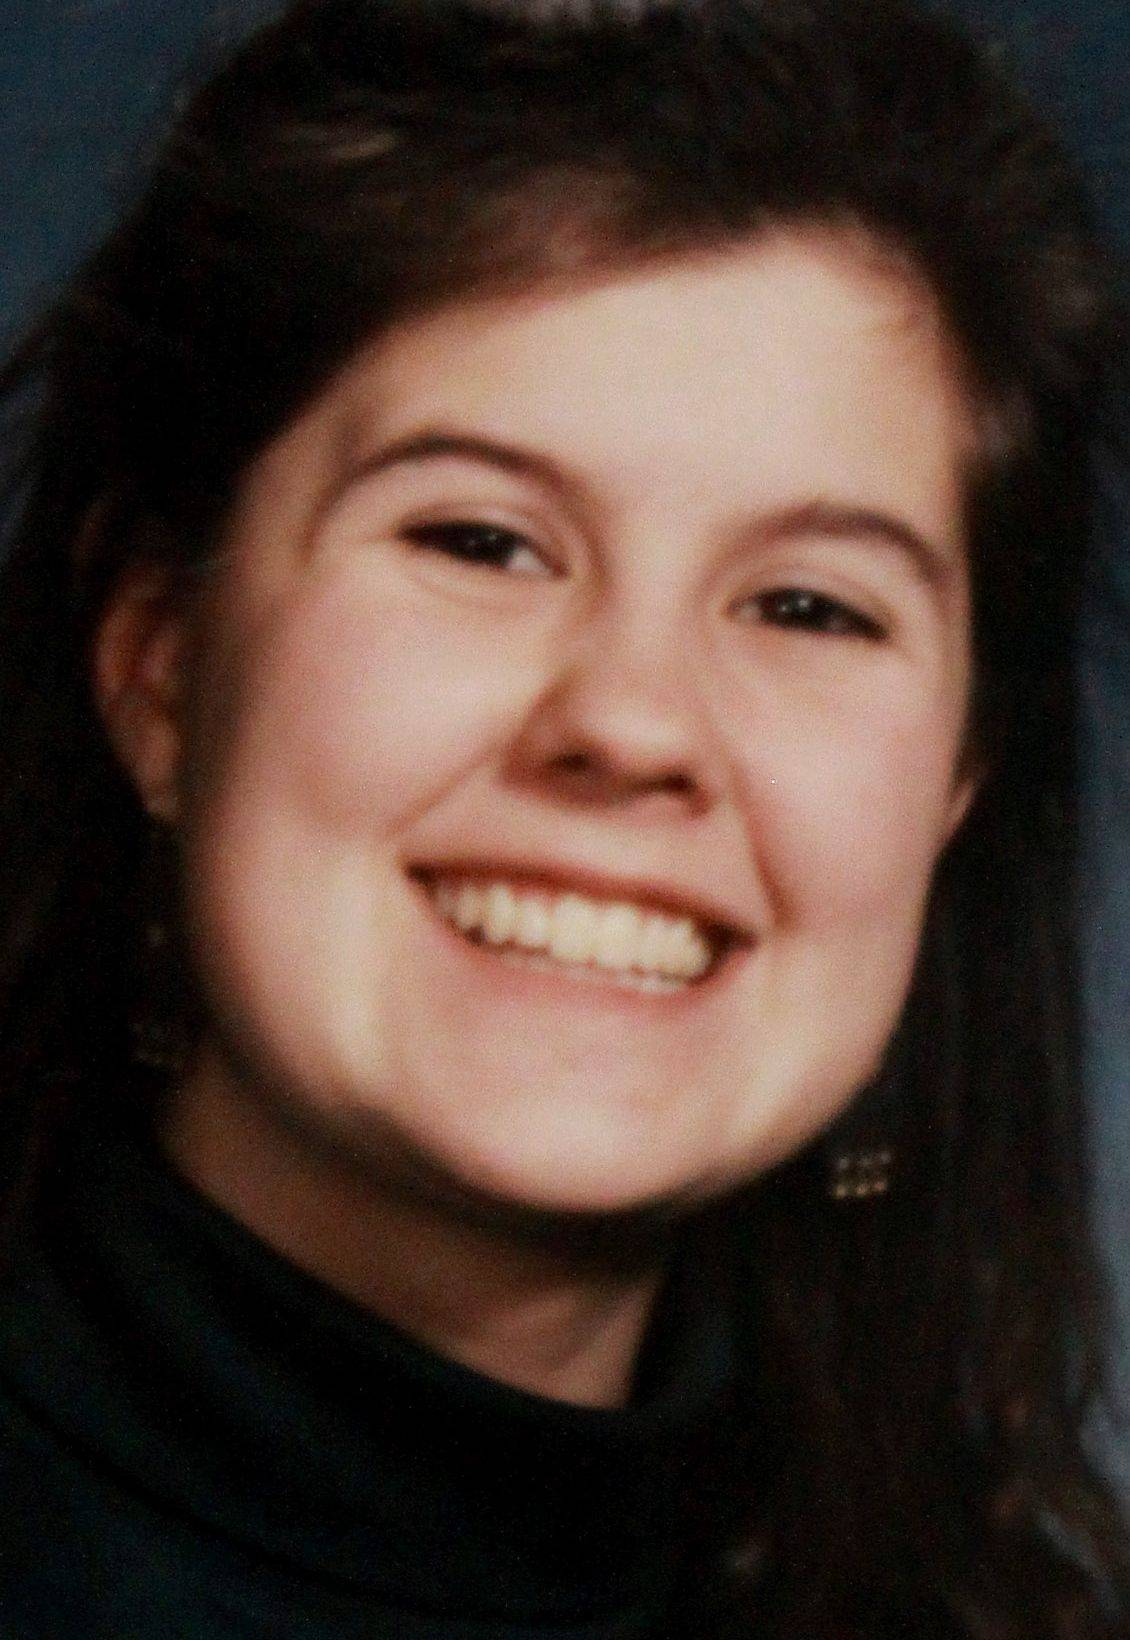 Lauren Wilson was killed at the age of 14 at a railroad crossing in Hinsdale.